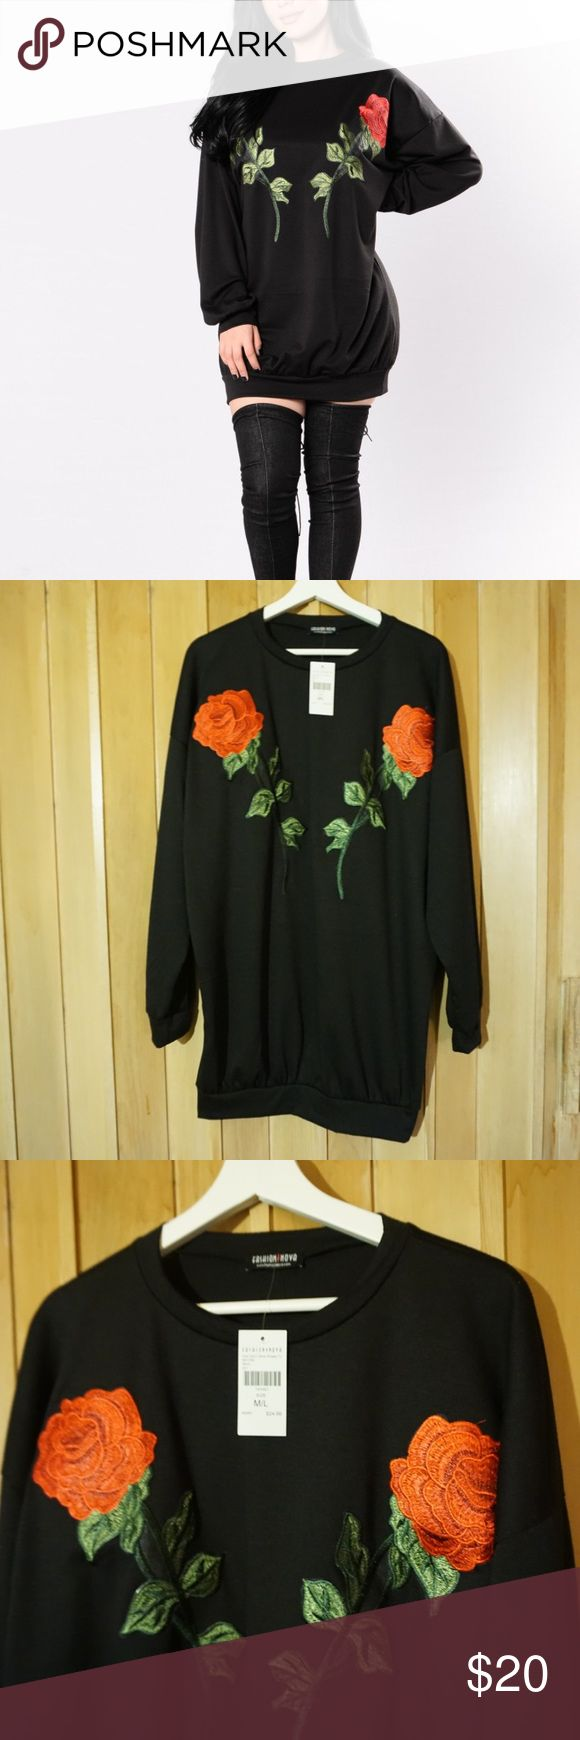 """And Don't Send Roses"" Tunic by Fashion Nova NWT, never worn!  Photos make the flowers seem more orange than red :(   Long Sleeve Tunic Mini Dress Rose Embroidery Made in USA 87% Polyester 9% Rayon 4% Spandex Fashion Nova Tops Tunics"